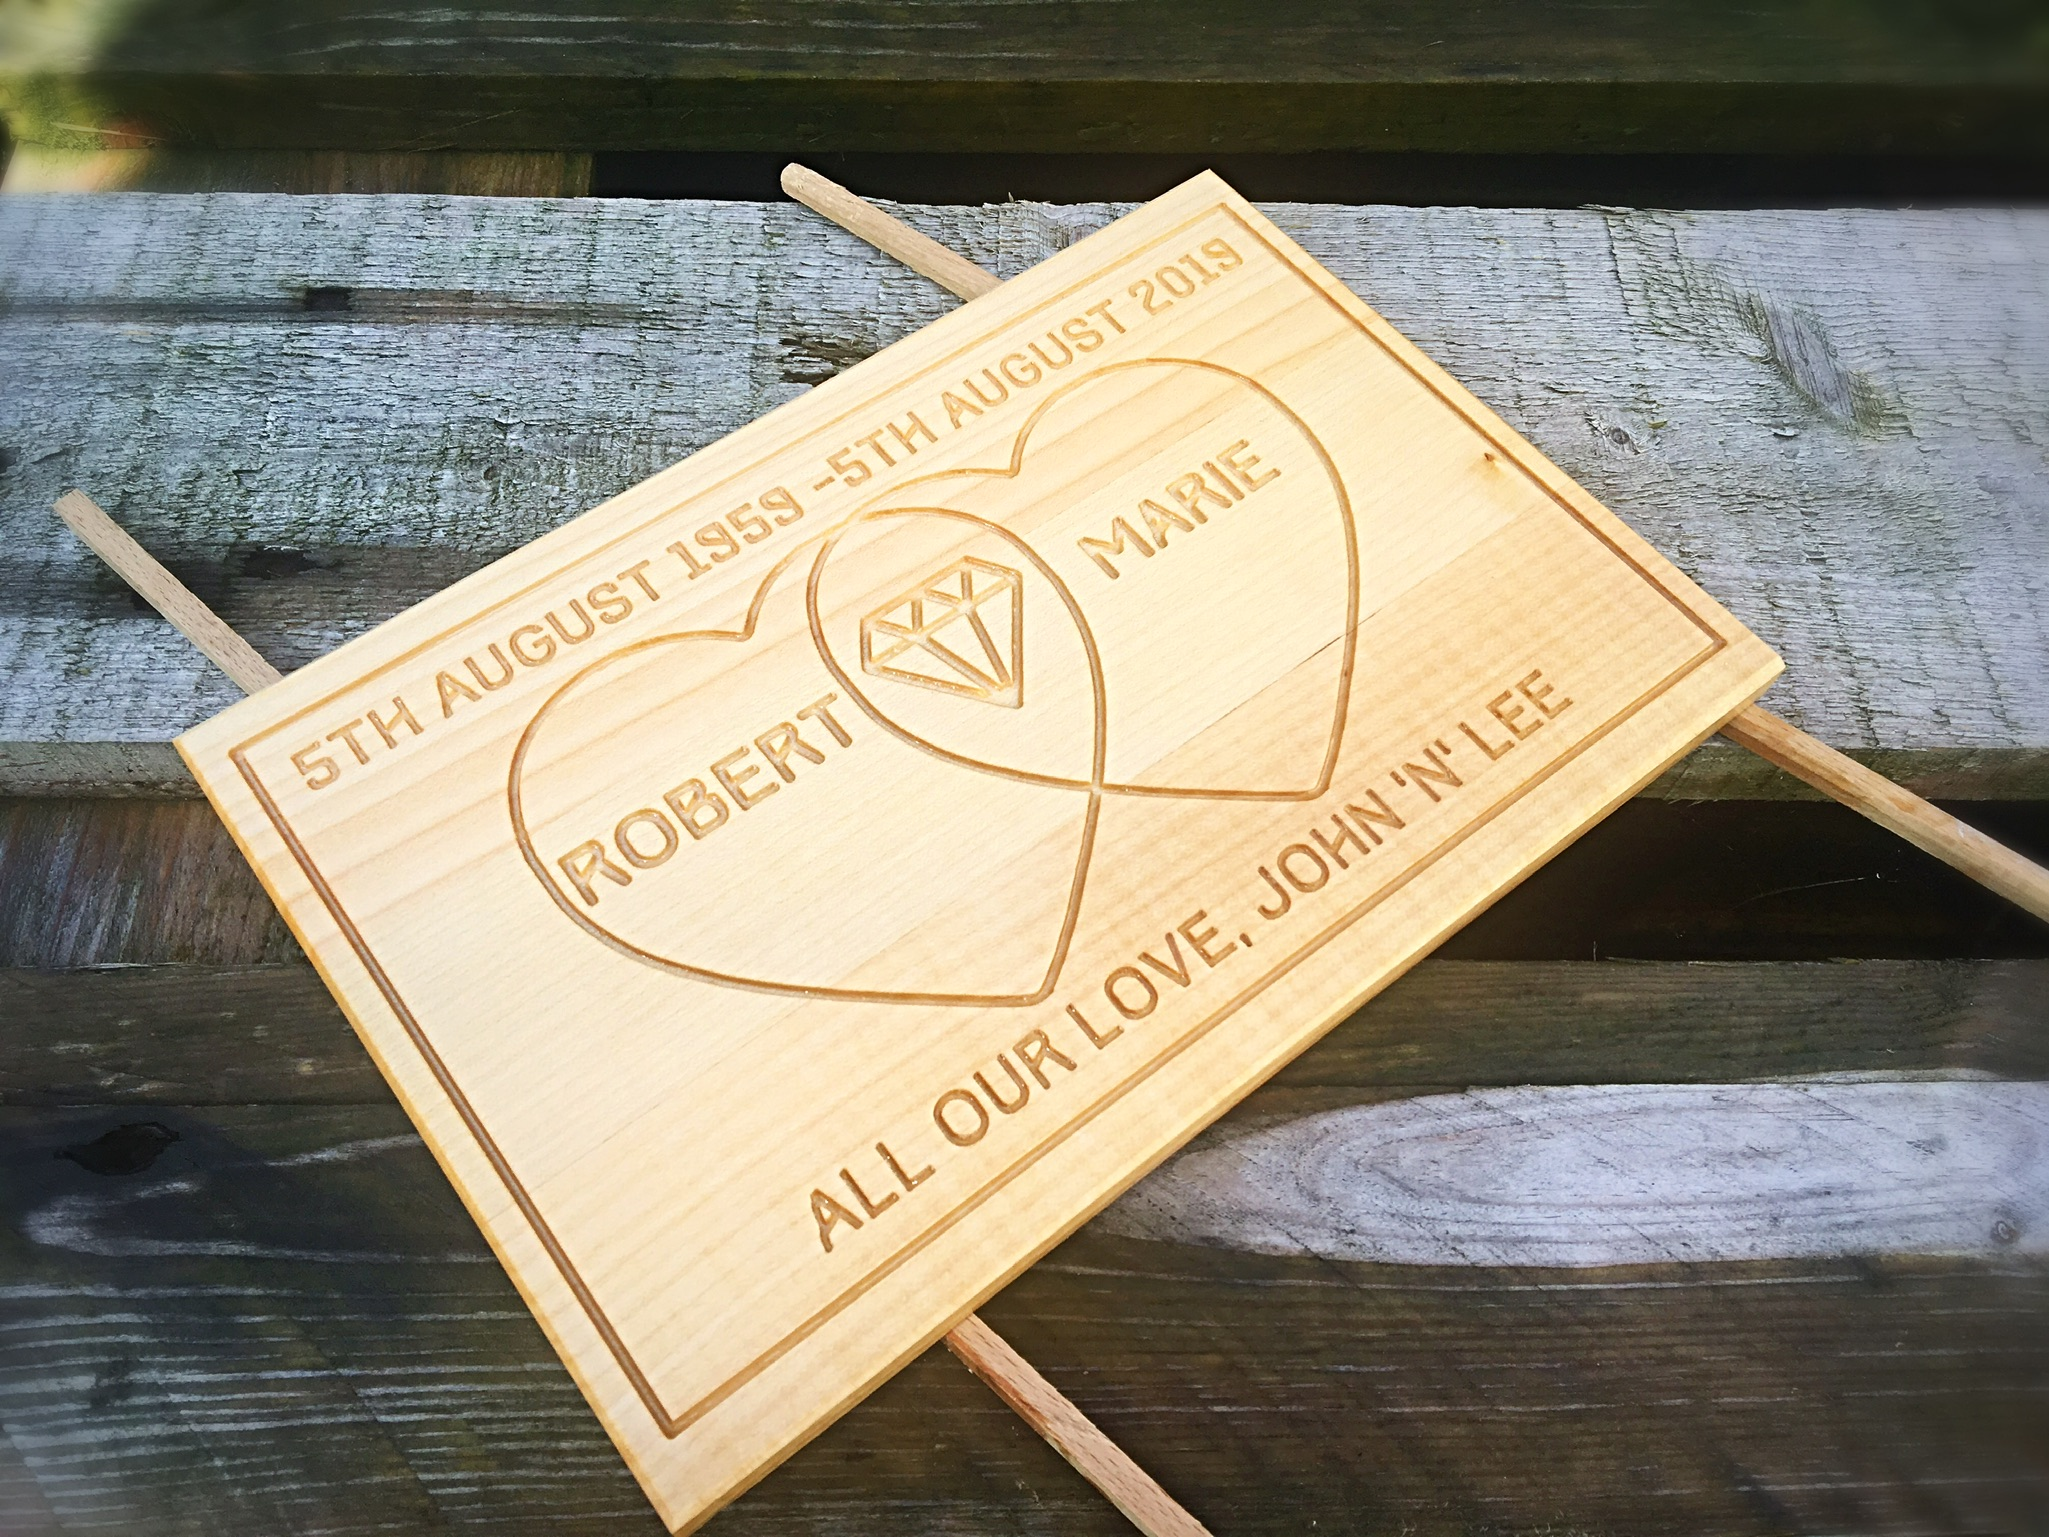 This is a plaque, custom made from solid beech for a wonderful couple who wanted something unique for their friends diamond wedding anniversary. We were delighted to have been asked to create such a meaningful gift. They absolutely love it and massive congratulations to Robert and Marie. 60 years is such an amazing achievement!